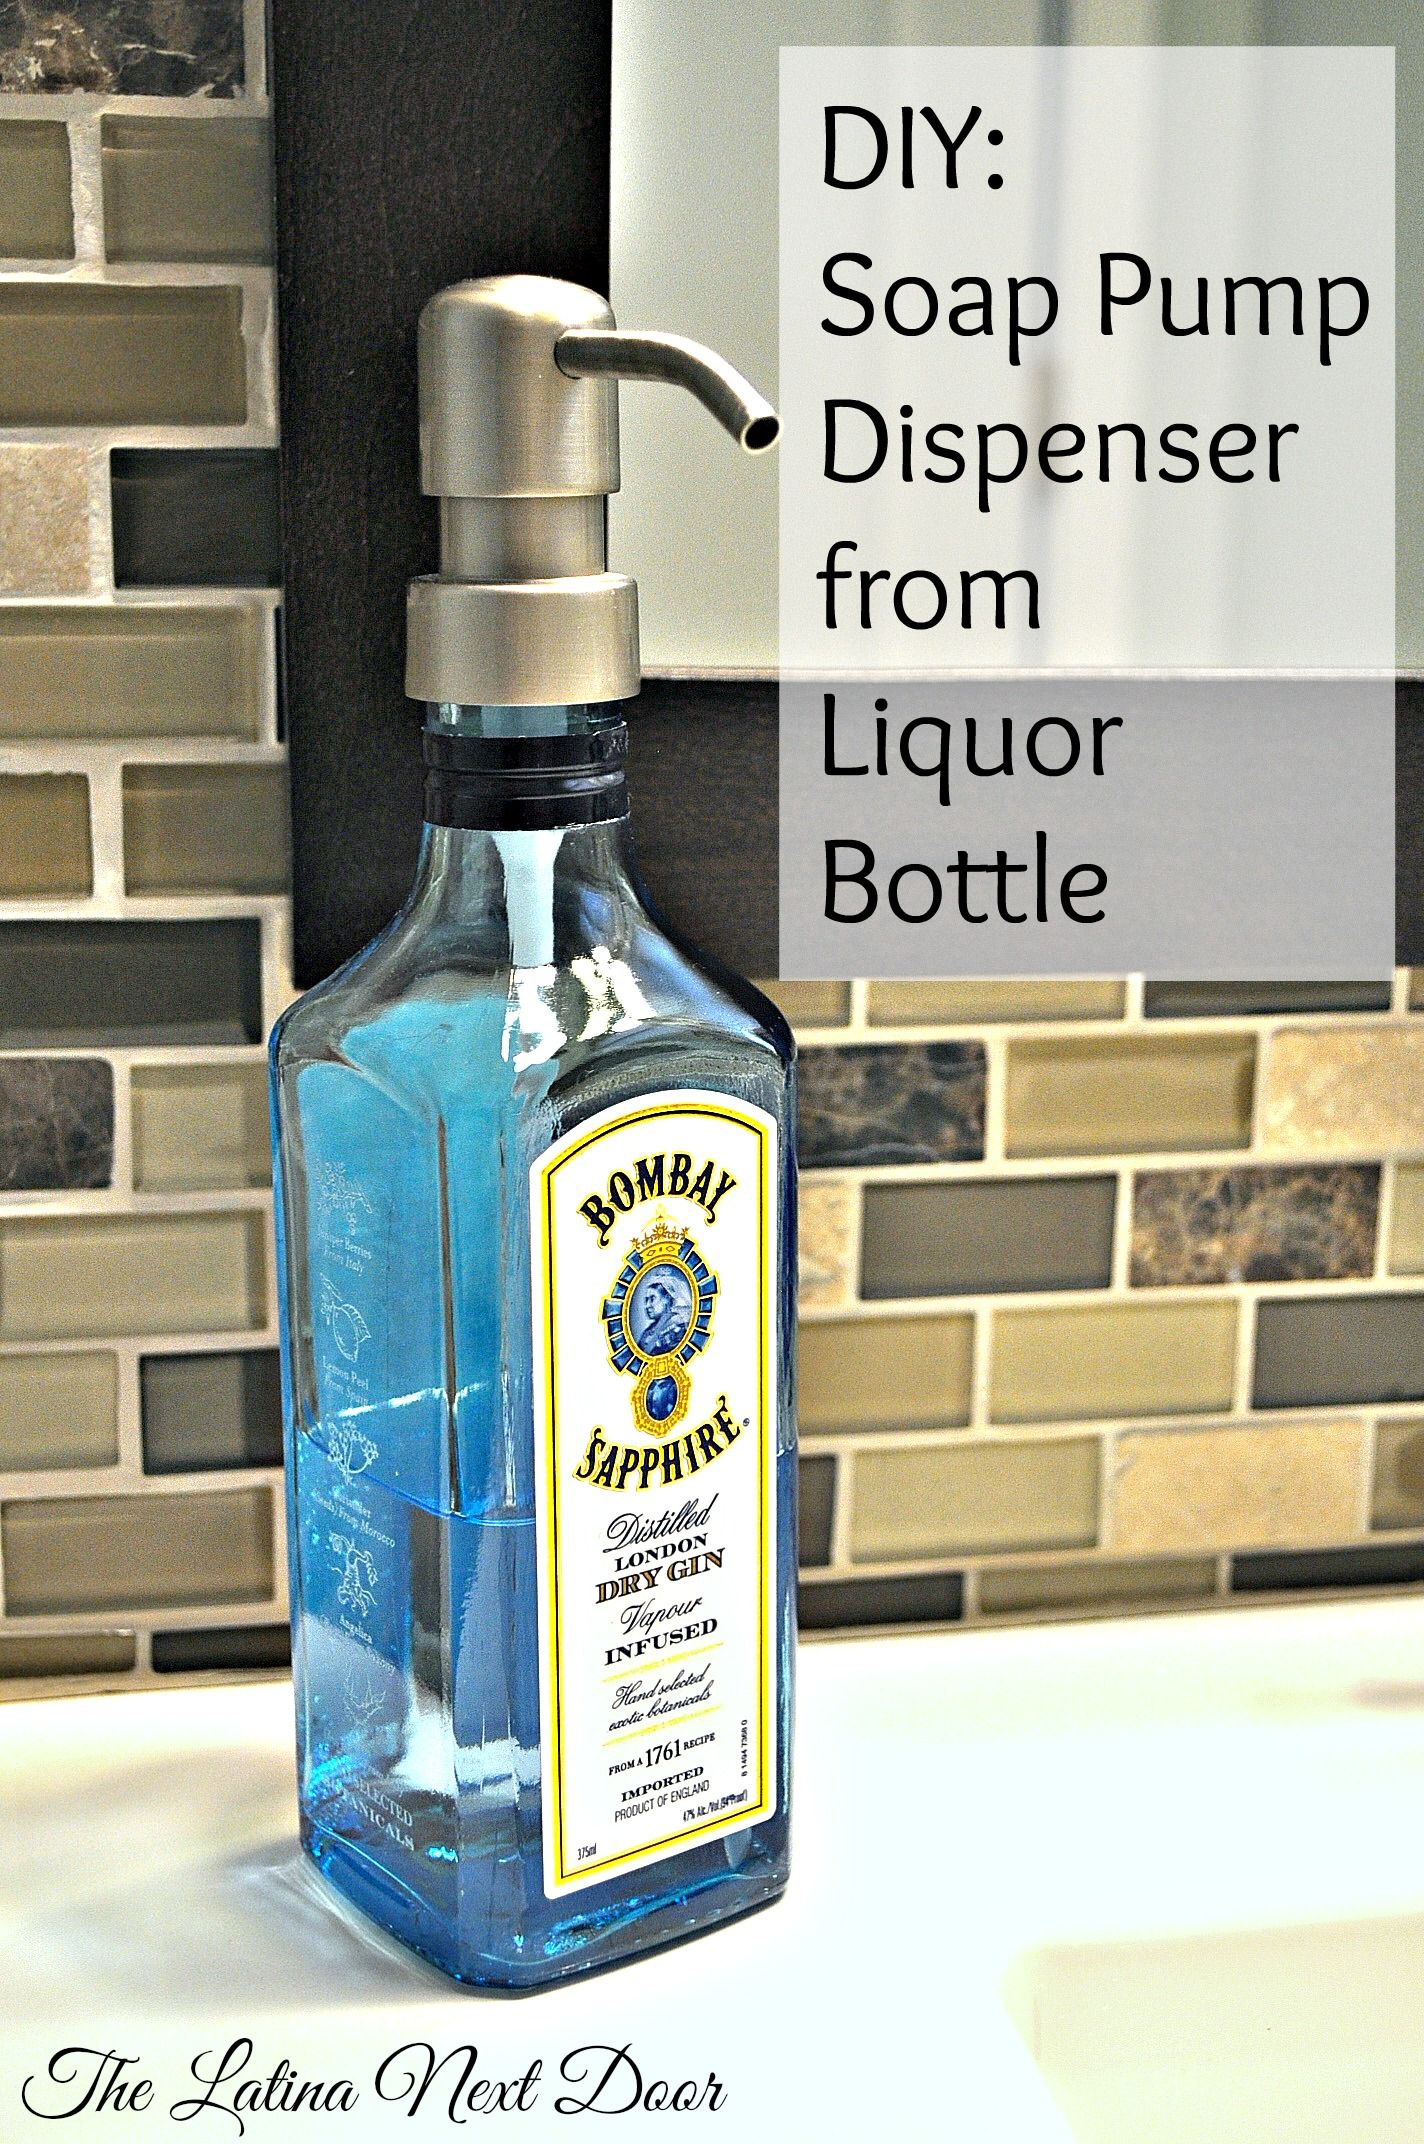 Make A Diy Liquor Bottle Soap Dispenser From Those Empty Bottles It S Easy Inexpensive And Looks Great You Can Also Find Out Where To Get The Pumps